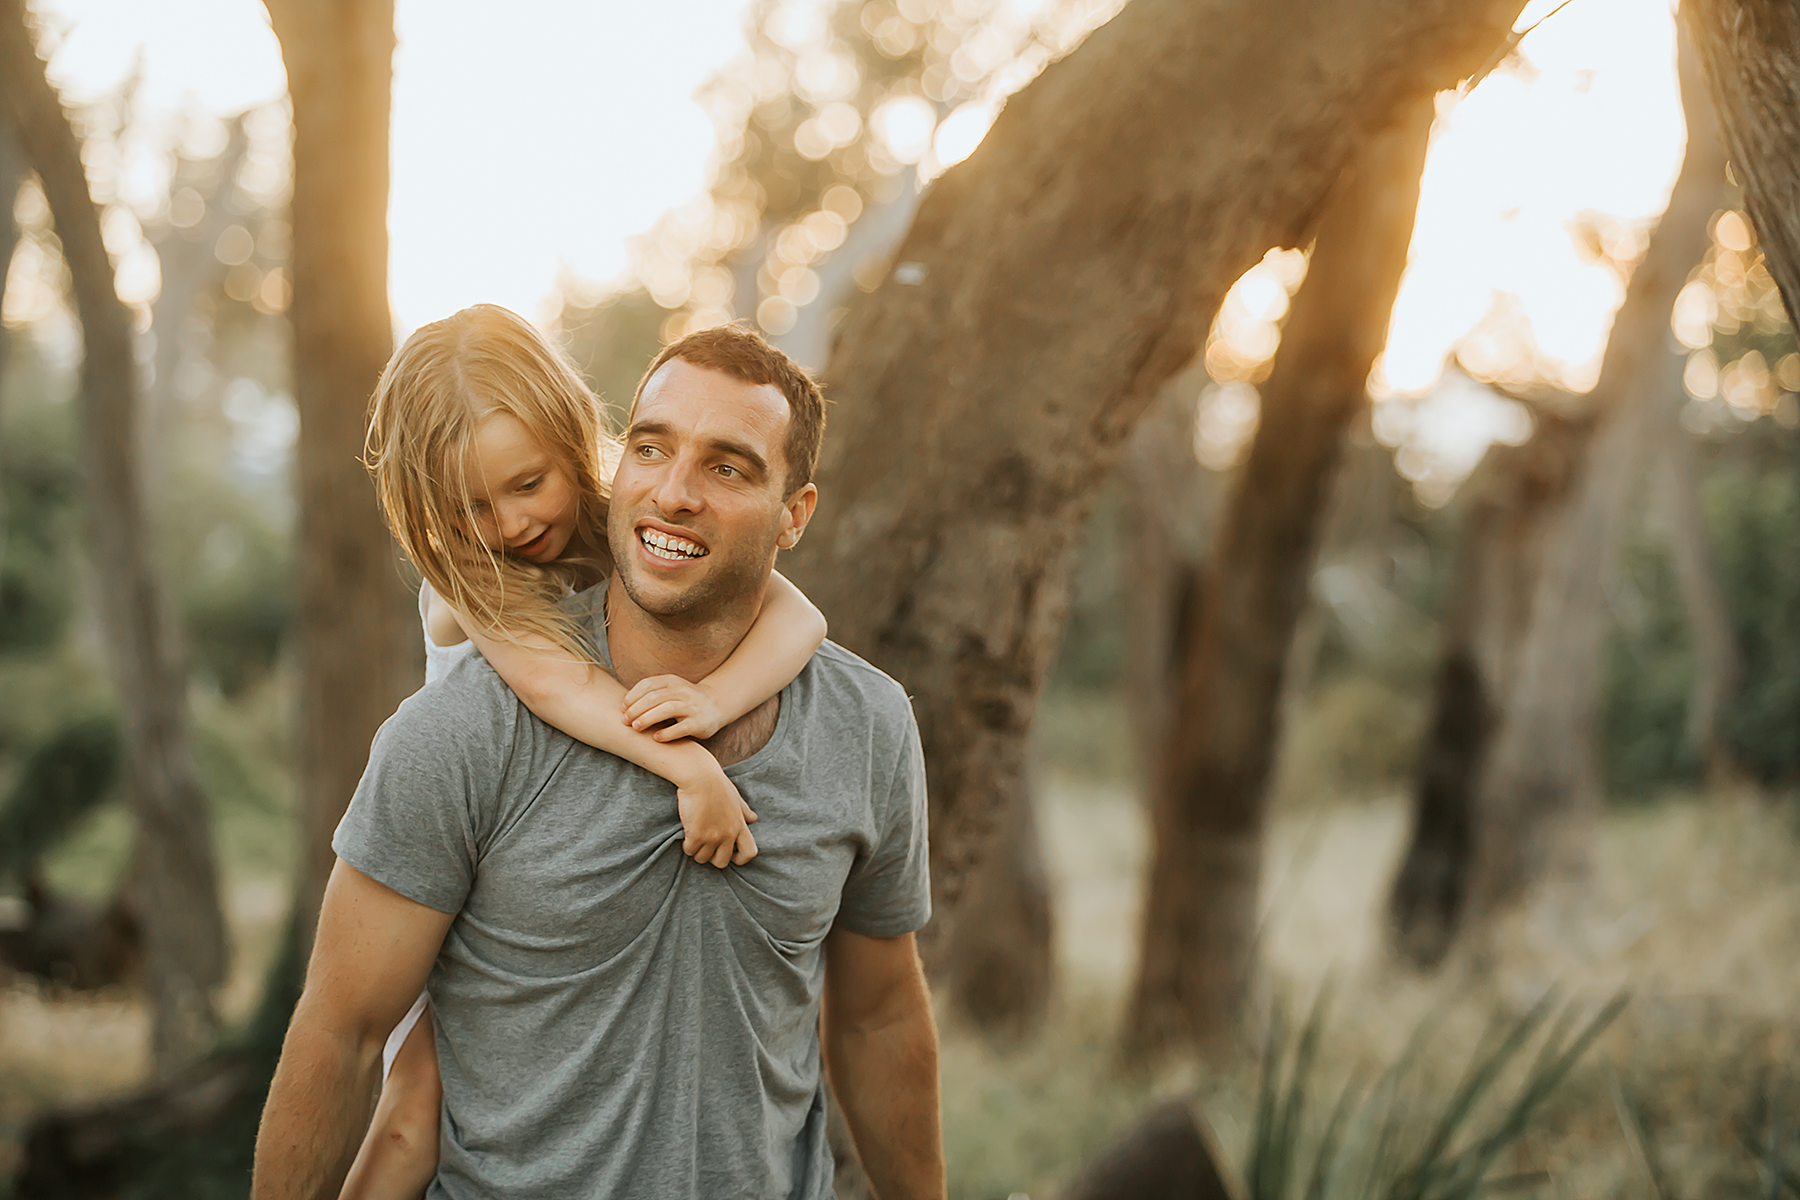 Taken during golden hour on the Mornington peninsula, a girl having a piggy back on dad's back during family photo session.